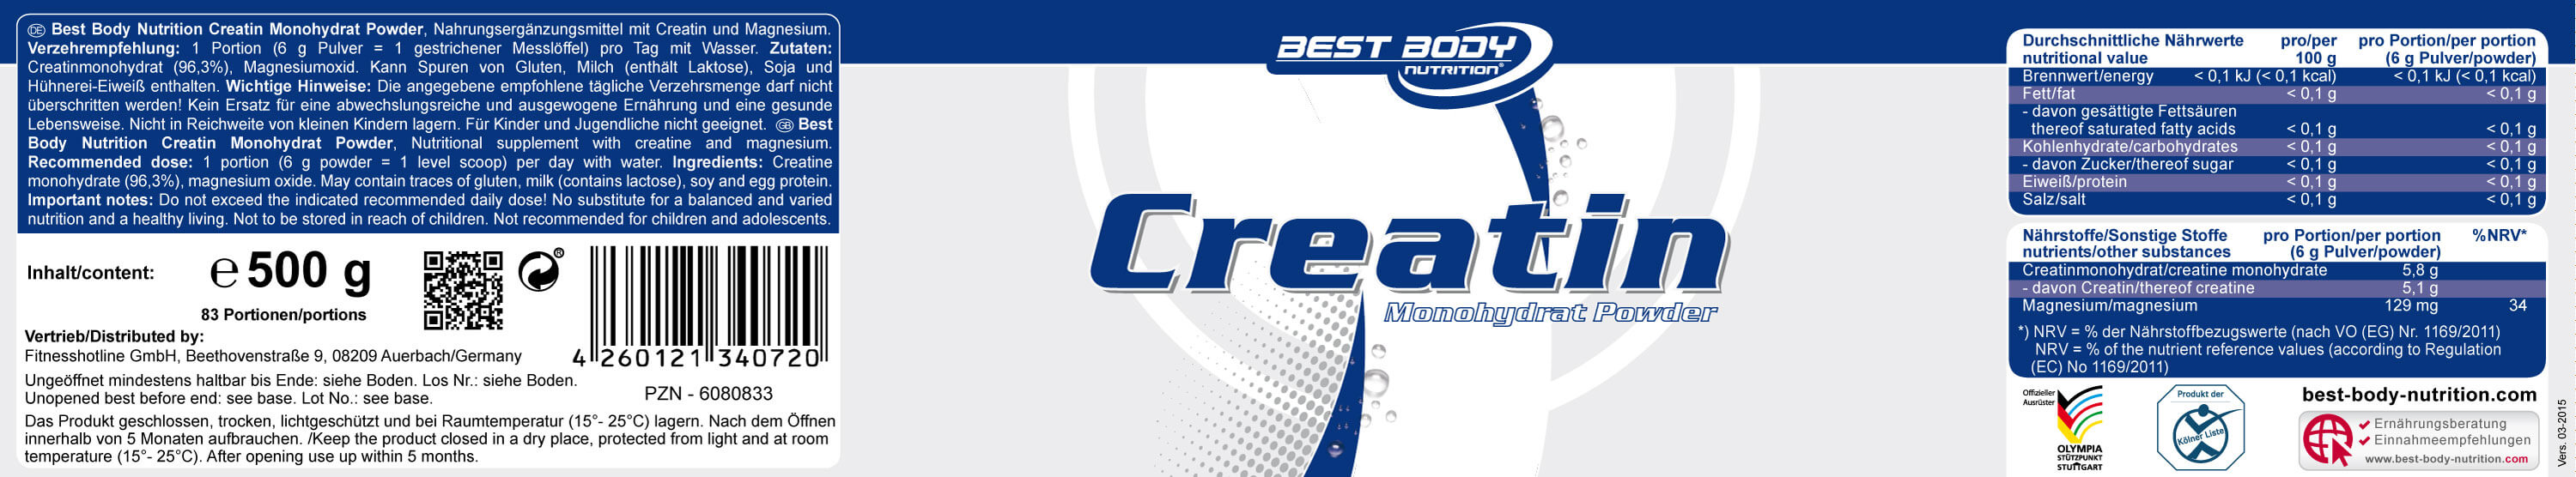 Best Body Nutrition Creatin Monohydrat Powder Etikett